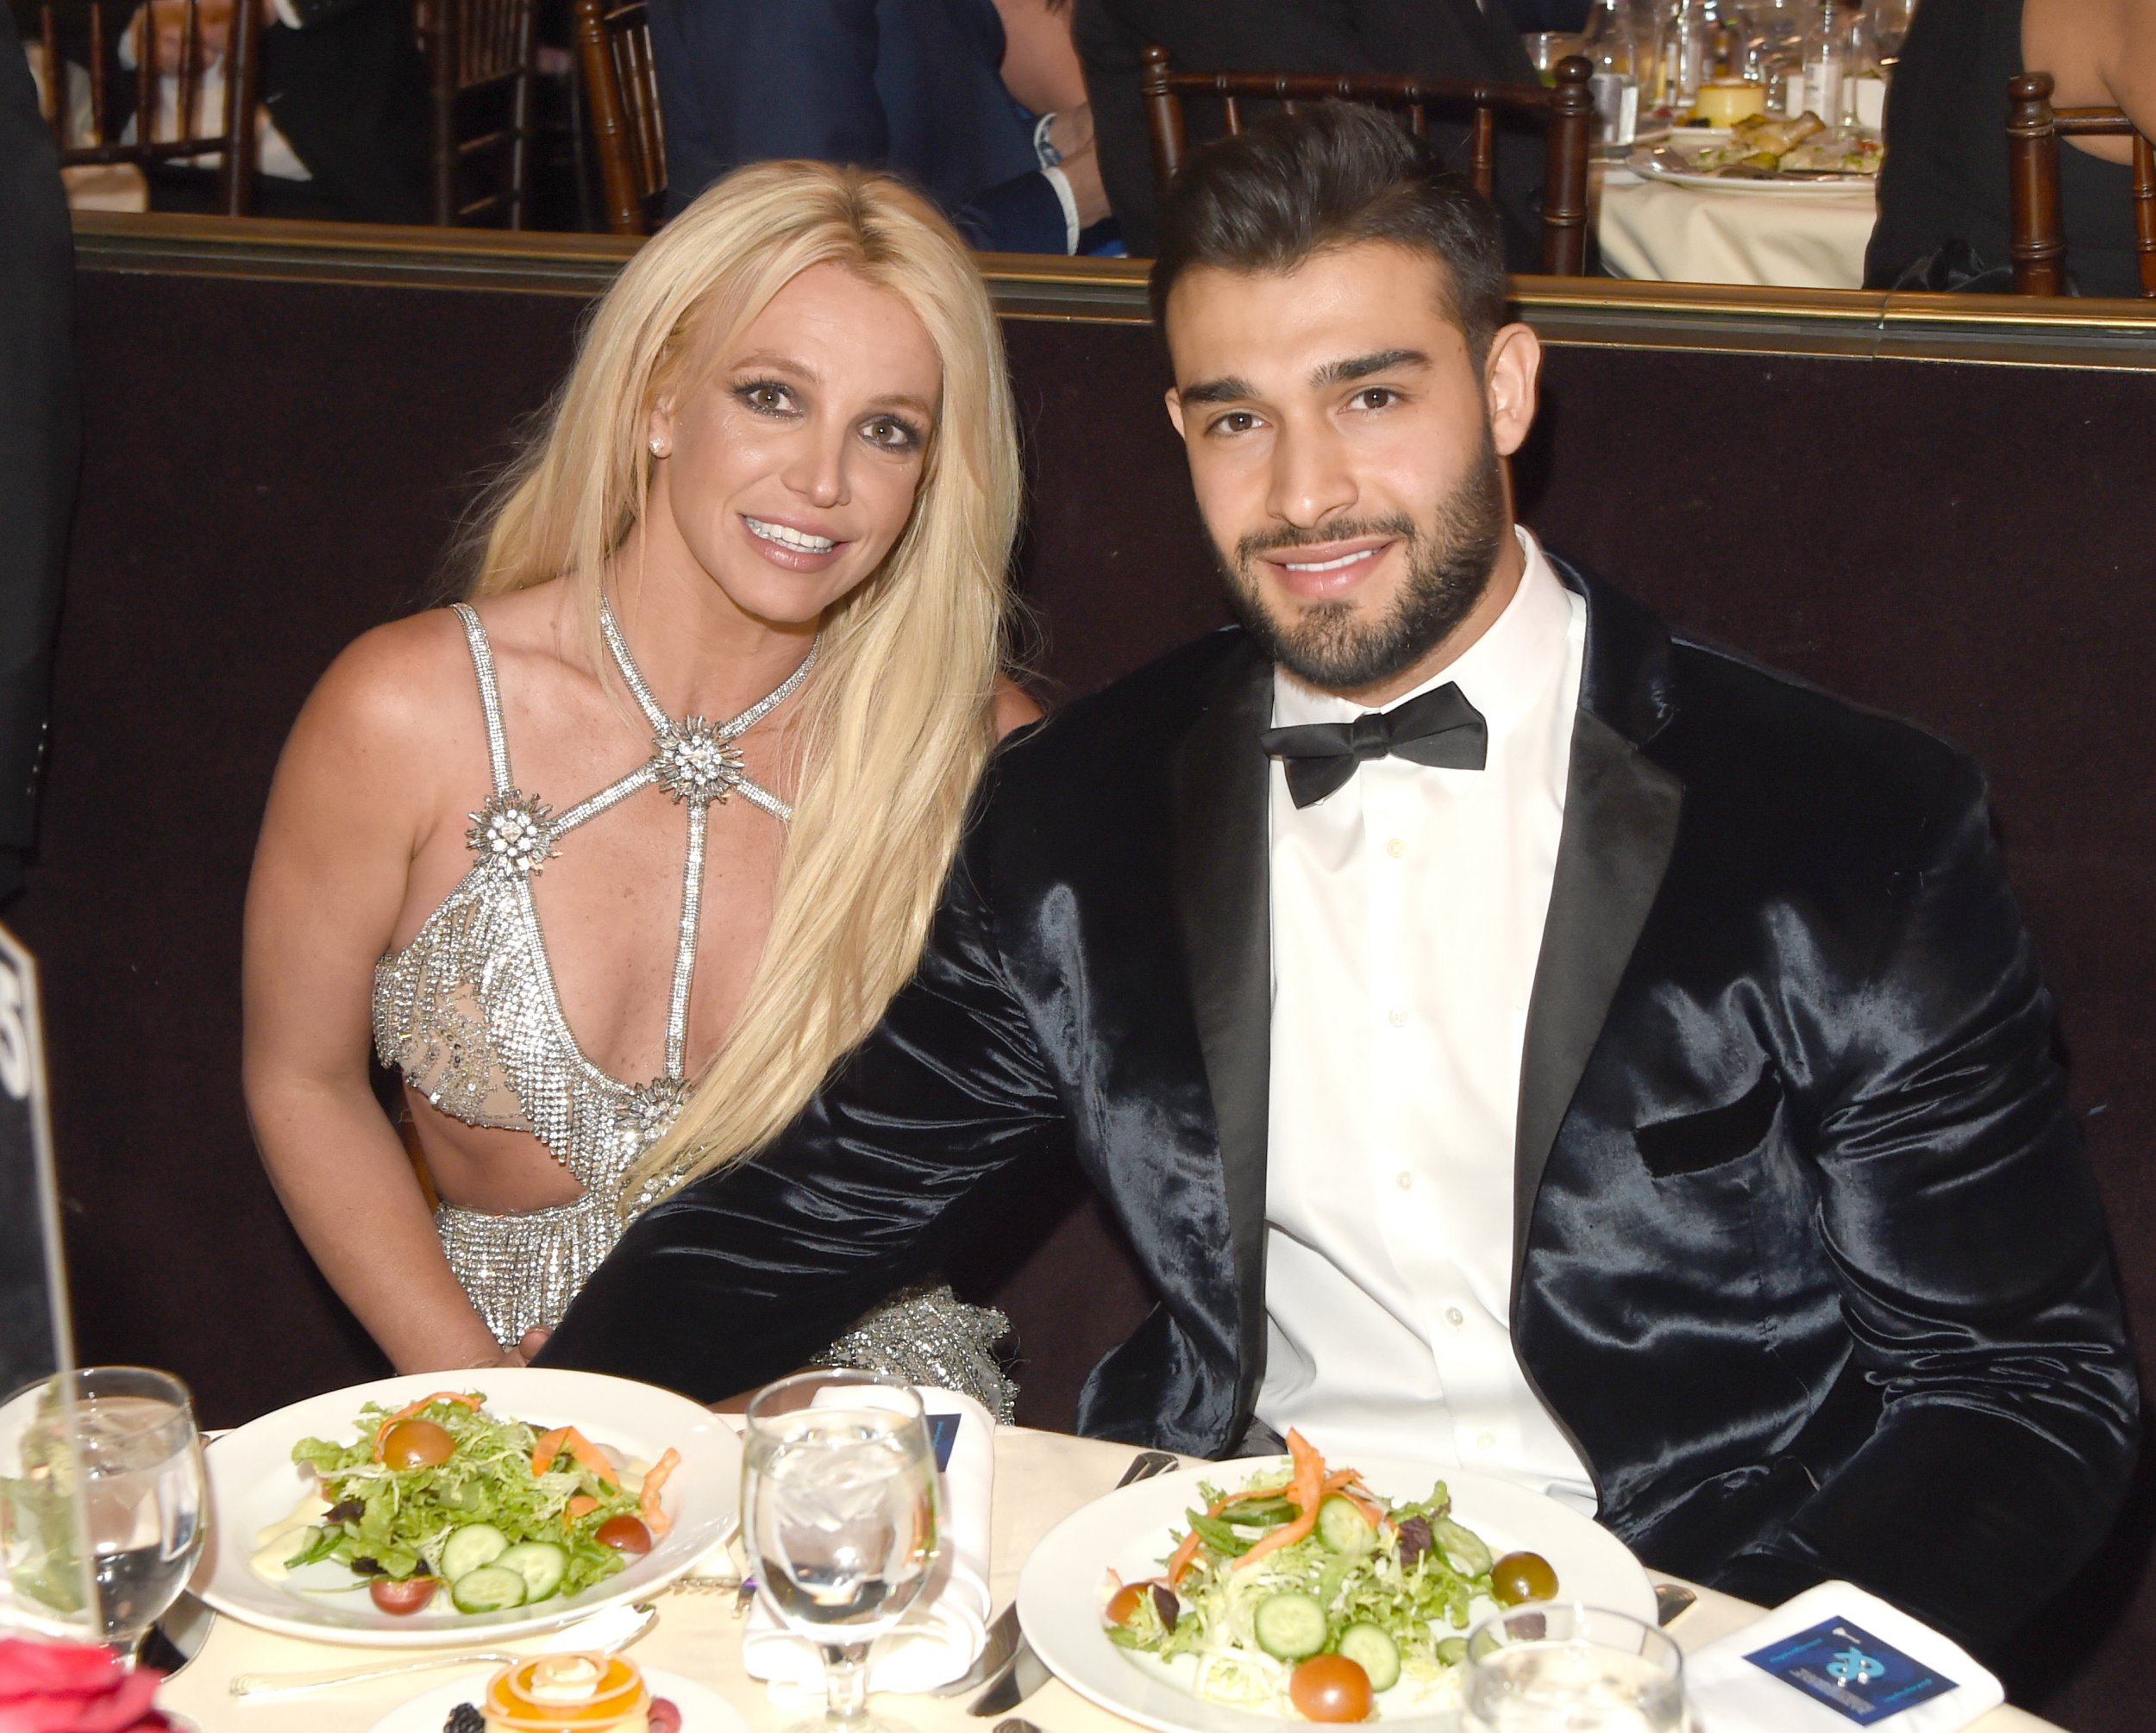 Britney Spears' boyfriend hopes to inspire others to look after mental health with new soccer academy